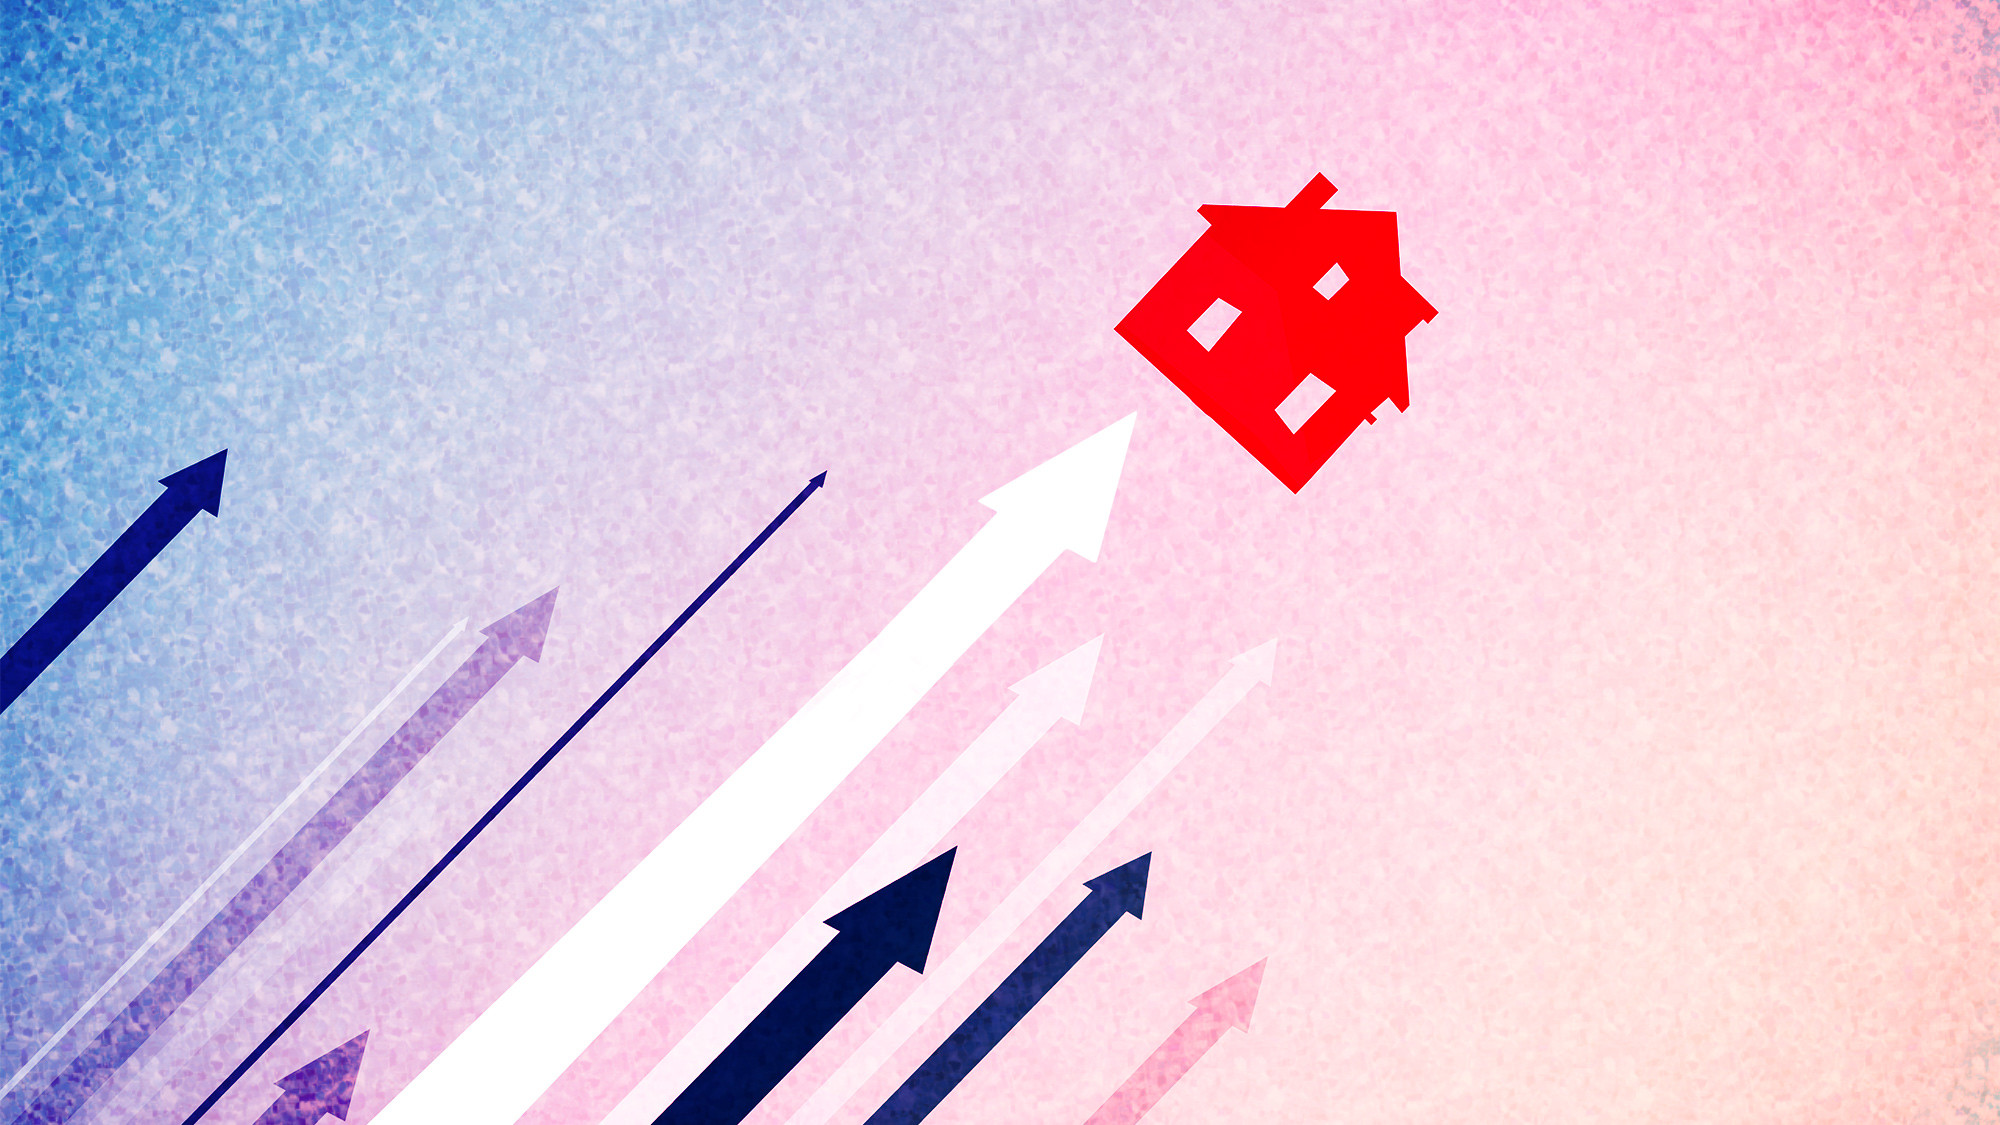 The Great Turnaround: How Much Have Prices Rebounded Since the Housing Bubble Burst?